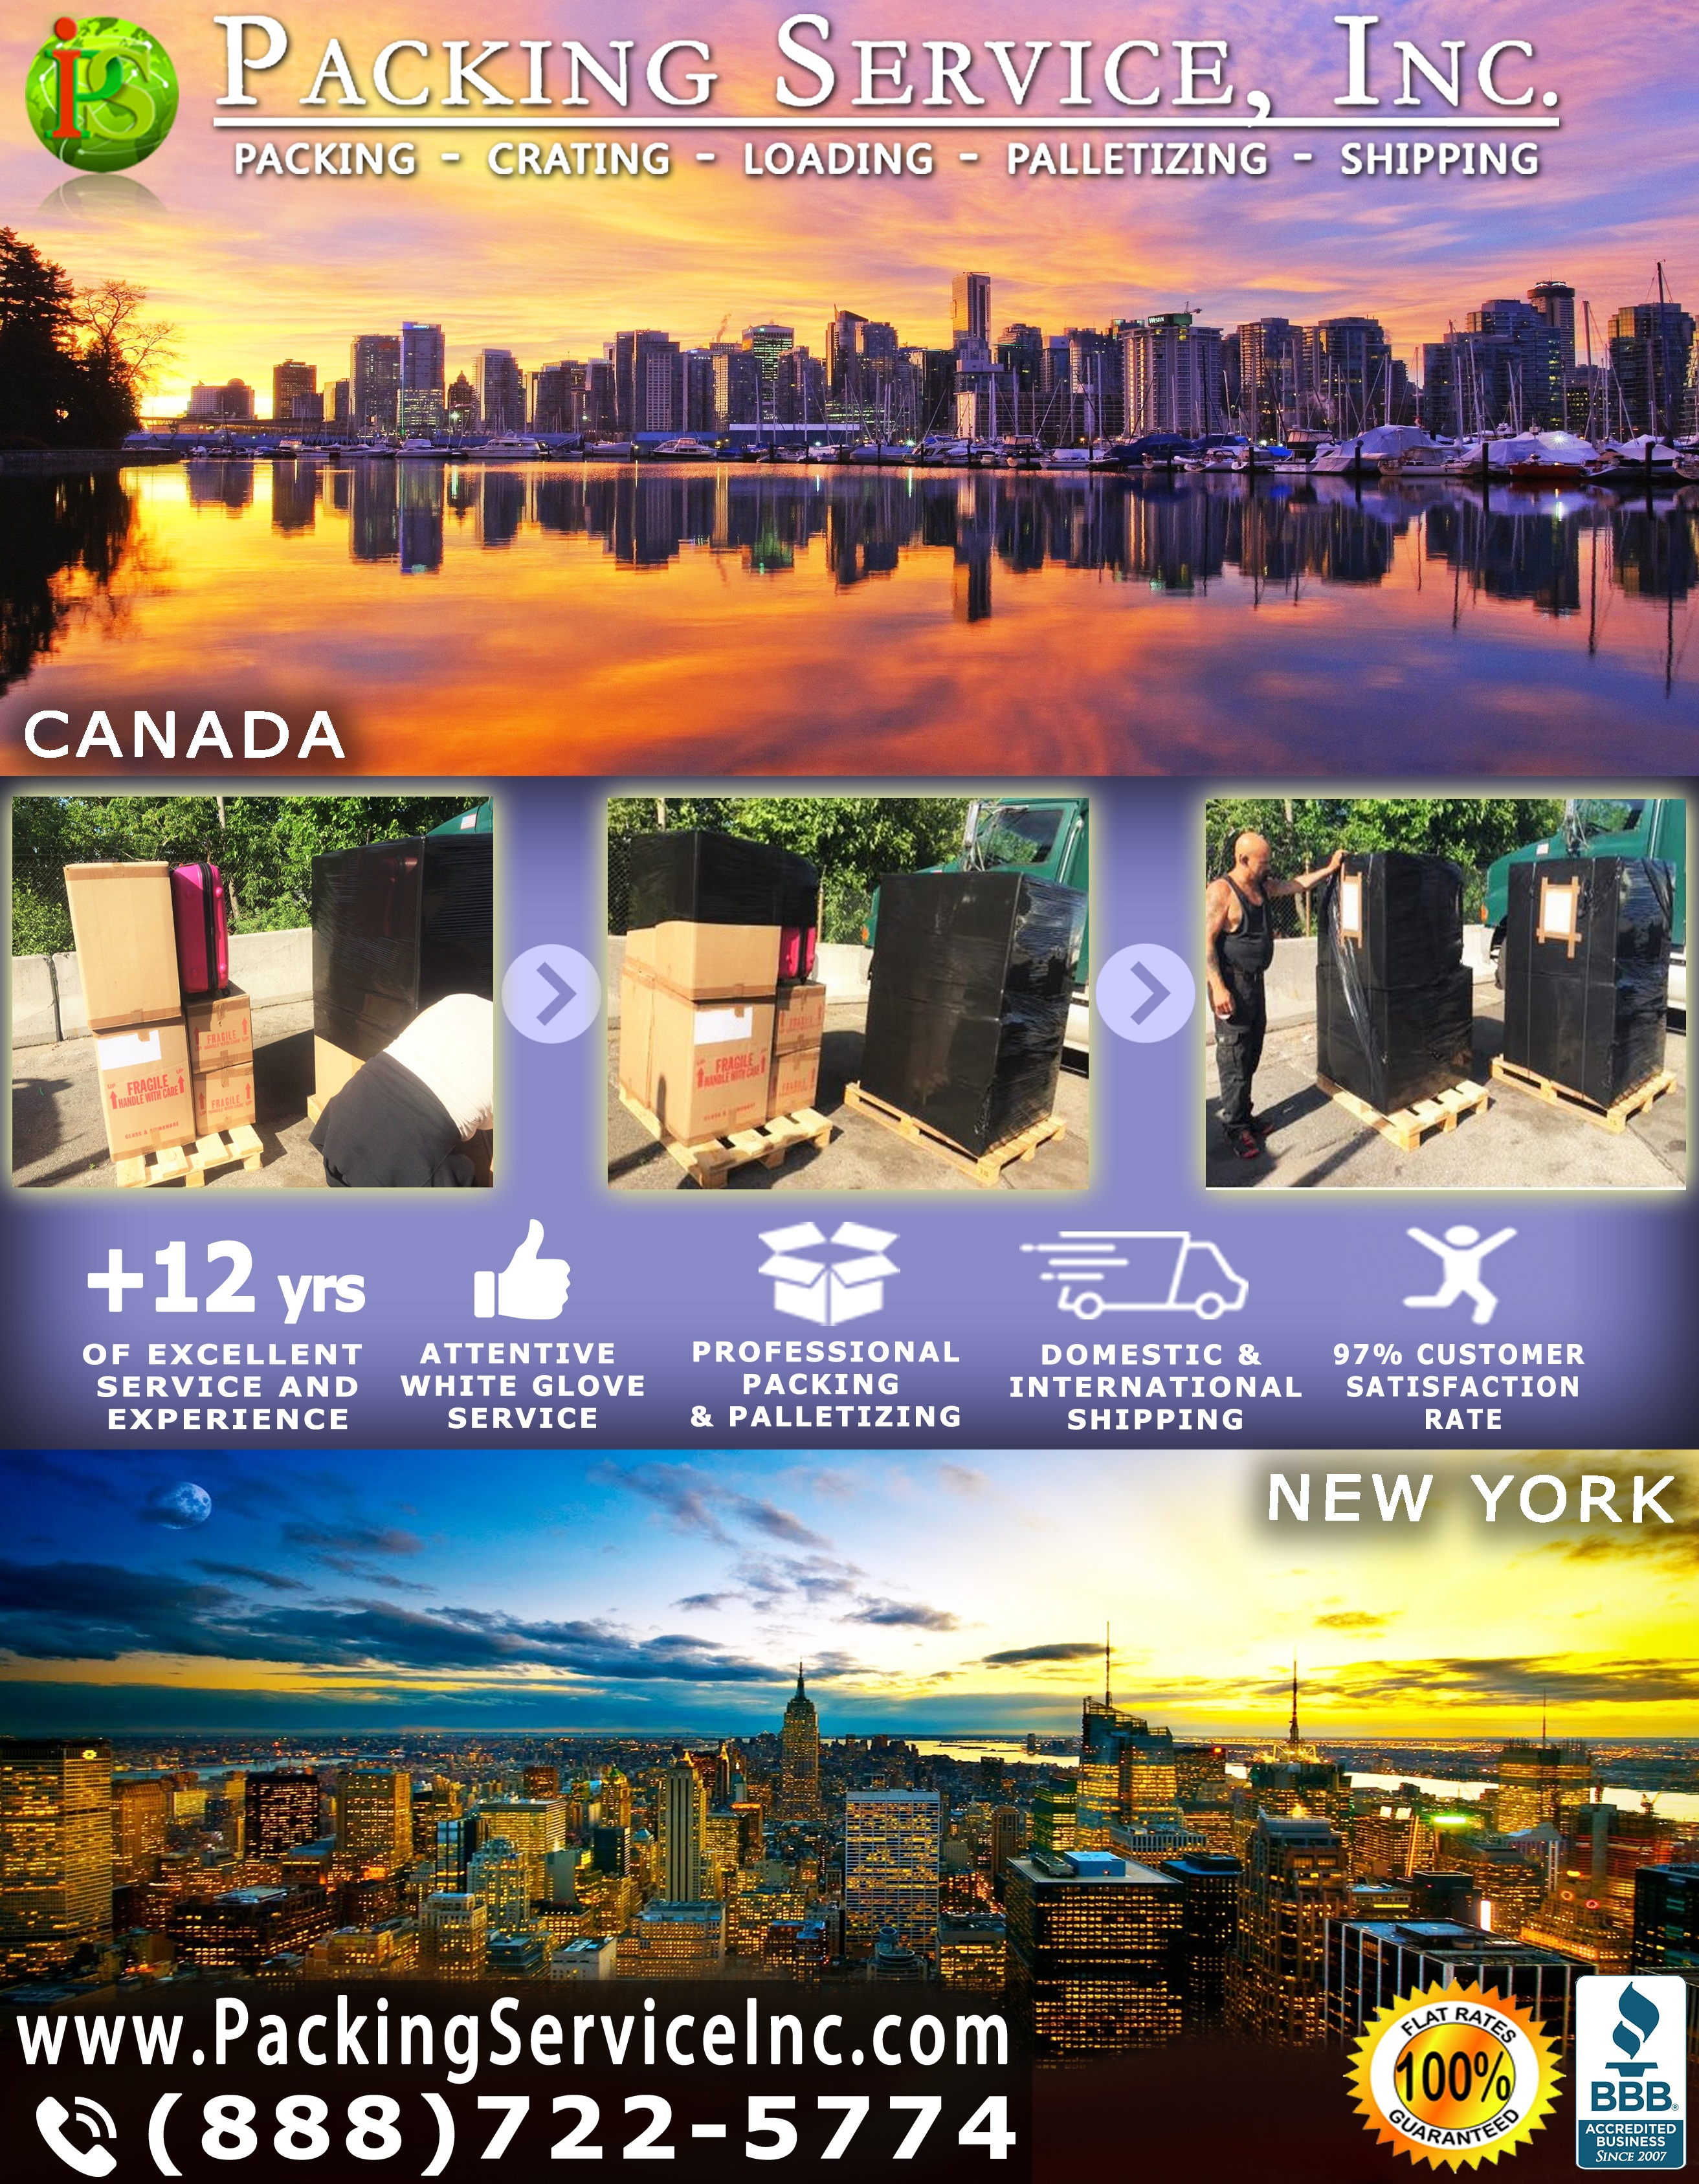 Packing Boxes, Palletizing and Shipping from New York to CANADA with Packing Service, Inc. - 589